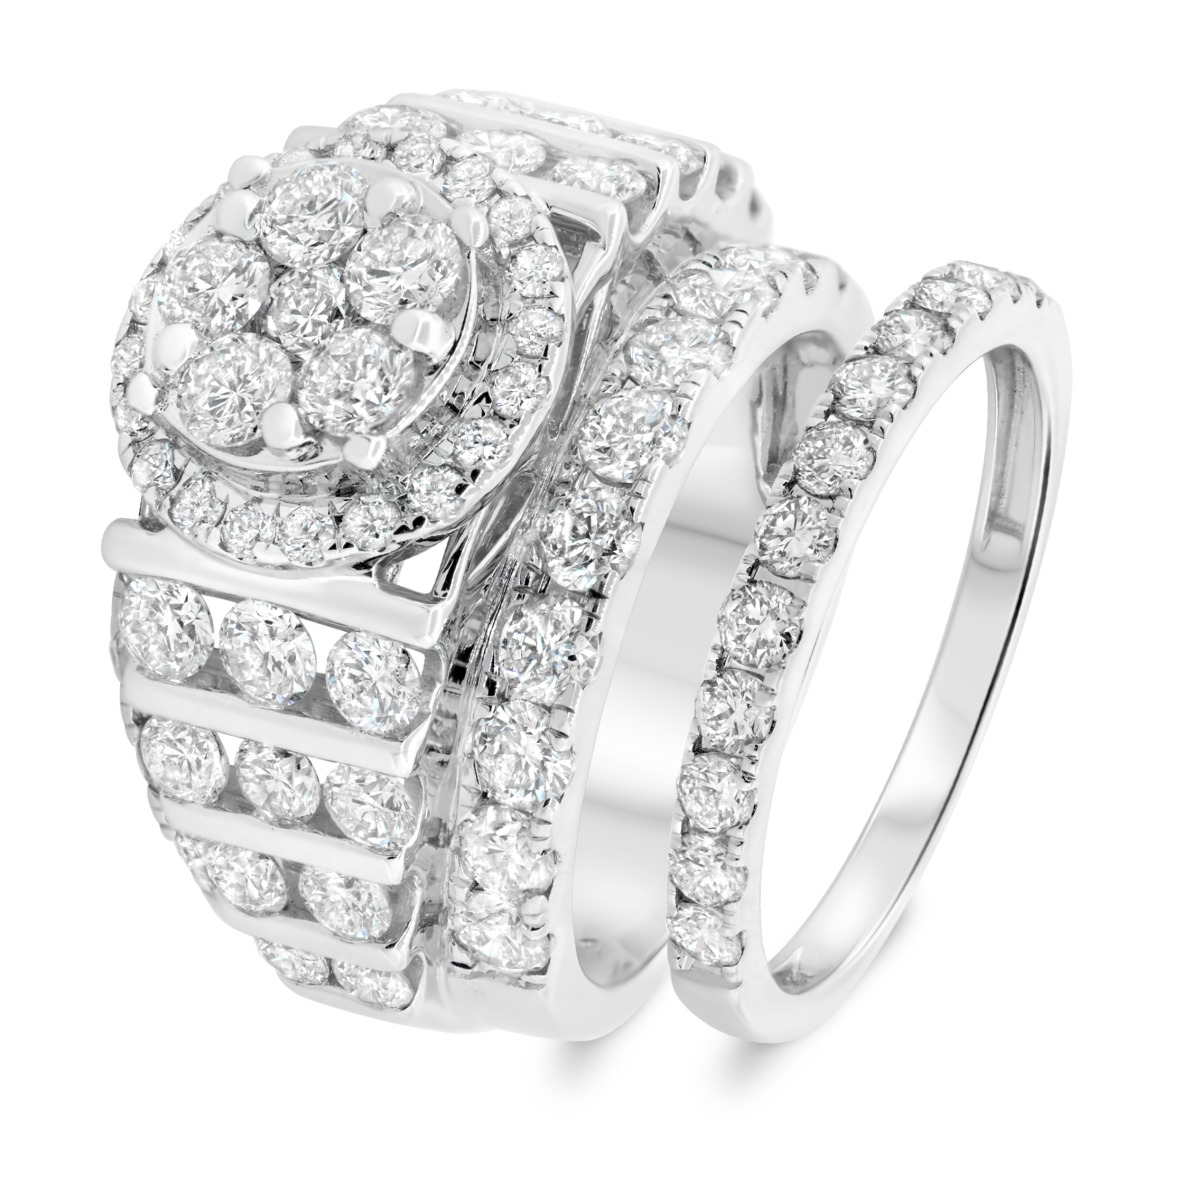 4 1/2 CT. T.W. Diamond Matching Bridal Ring Set 14K White Gold